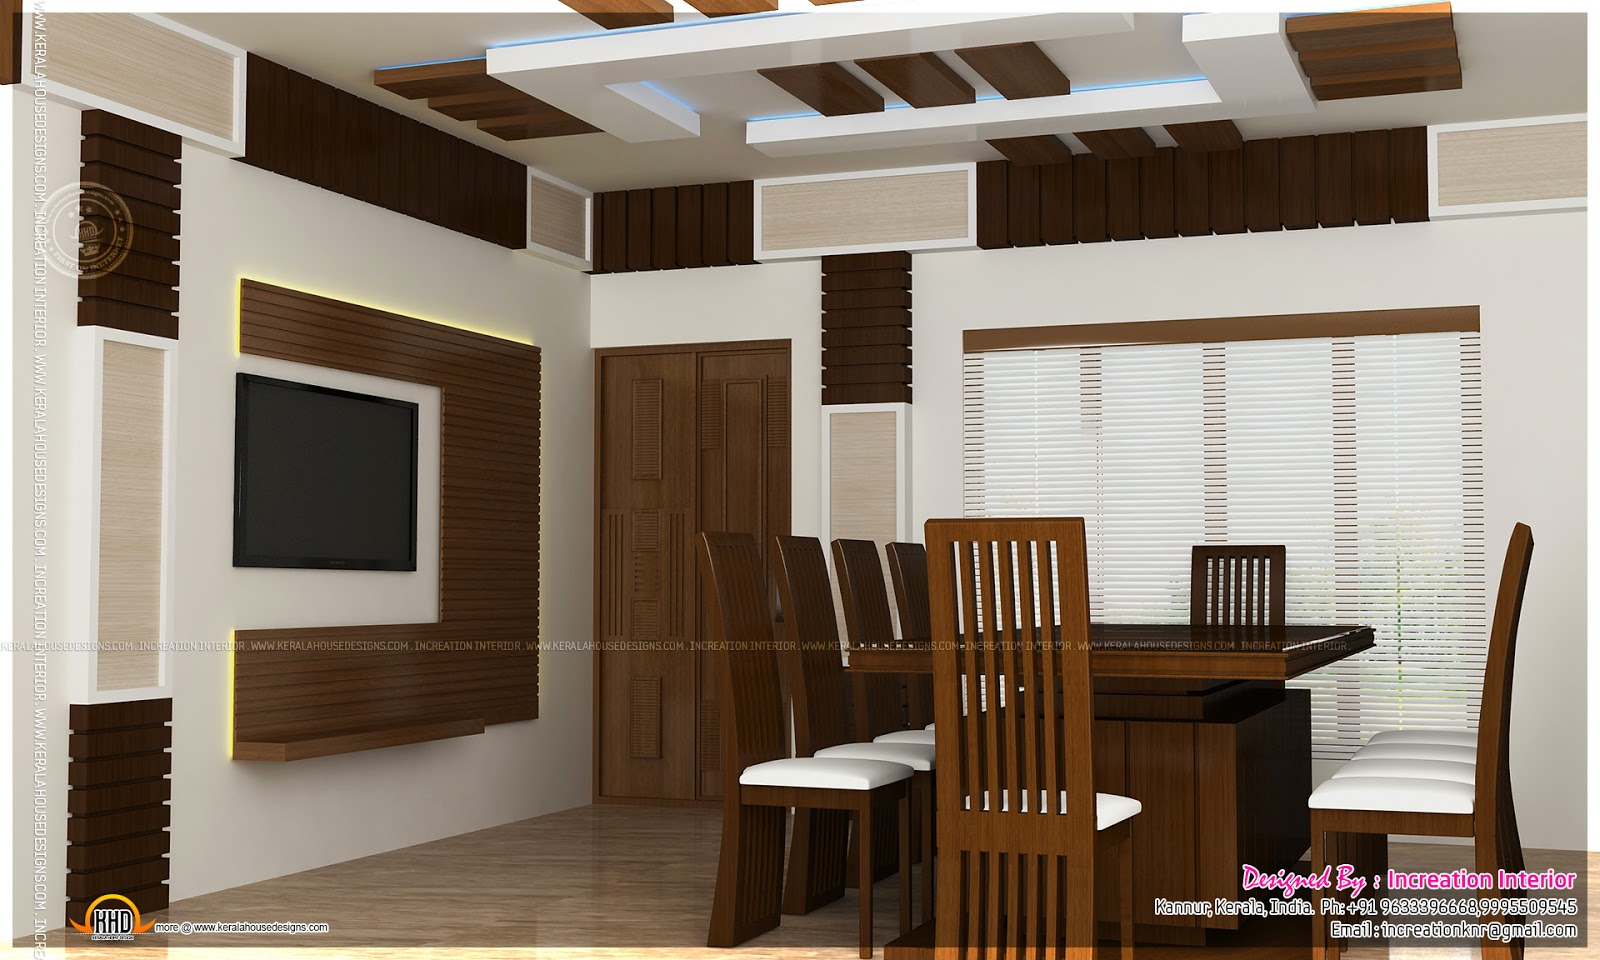 Interior design ideas by increation interior kerala for Interior designs for houses